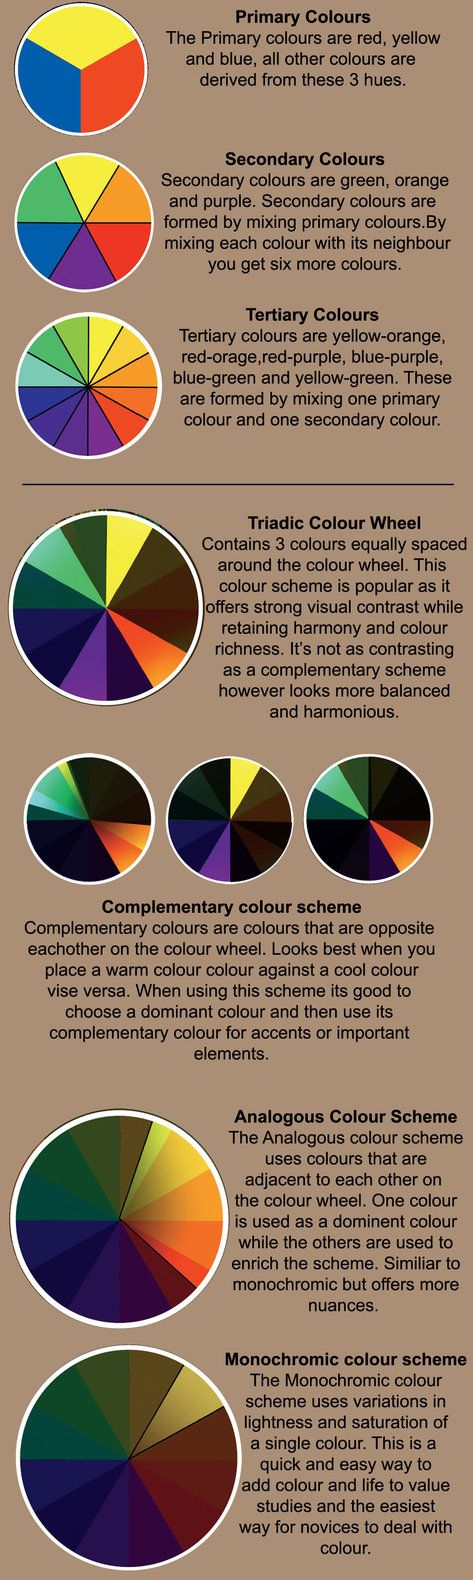 Colour Theory I By Jack Eaves Art On DeviantART